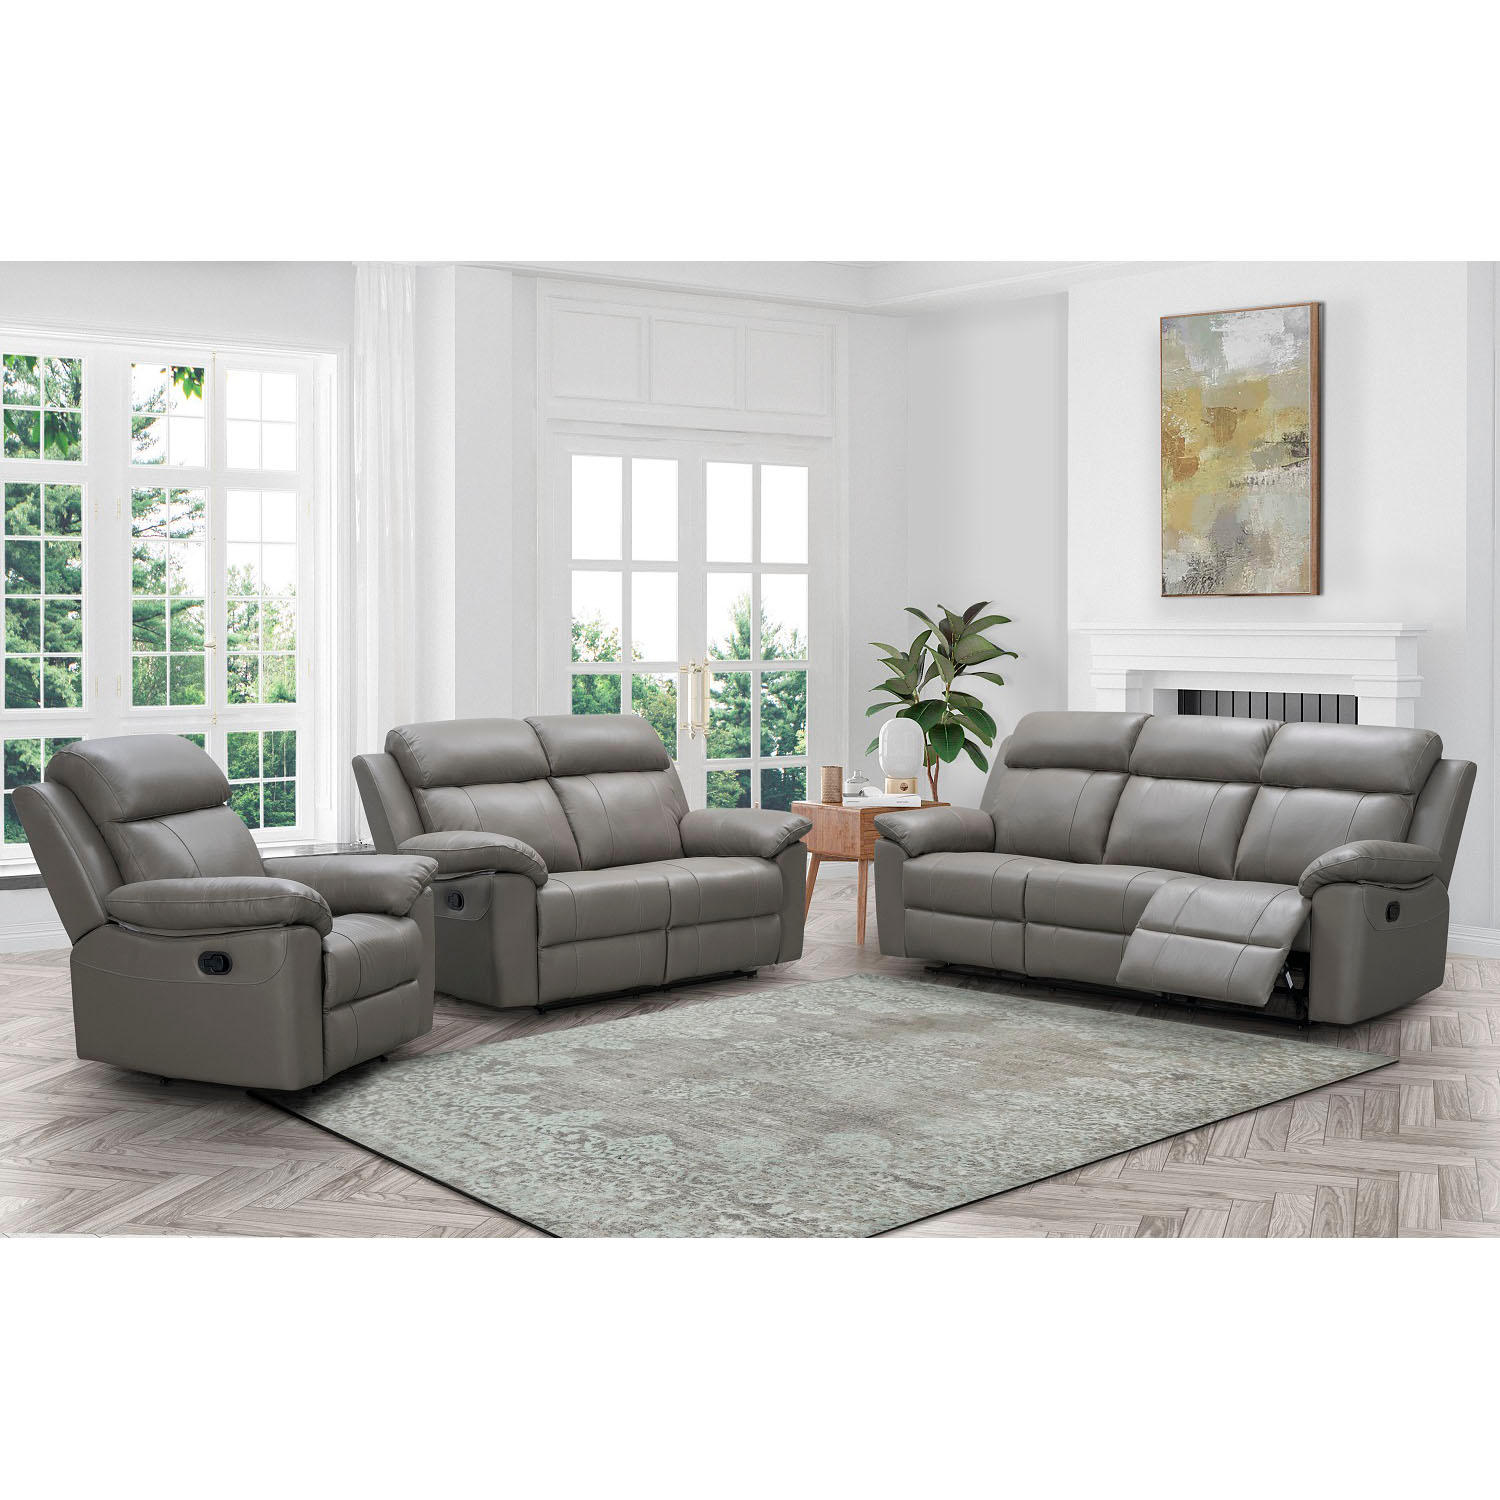 $1000 Off Select Furniture